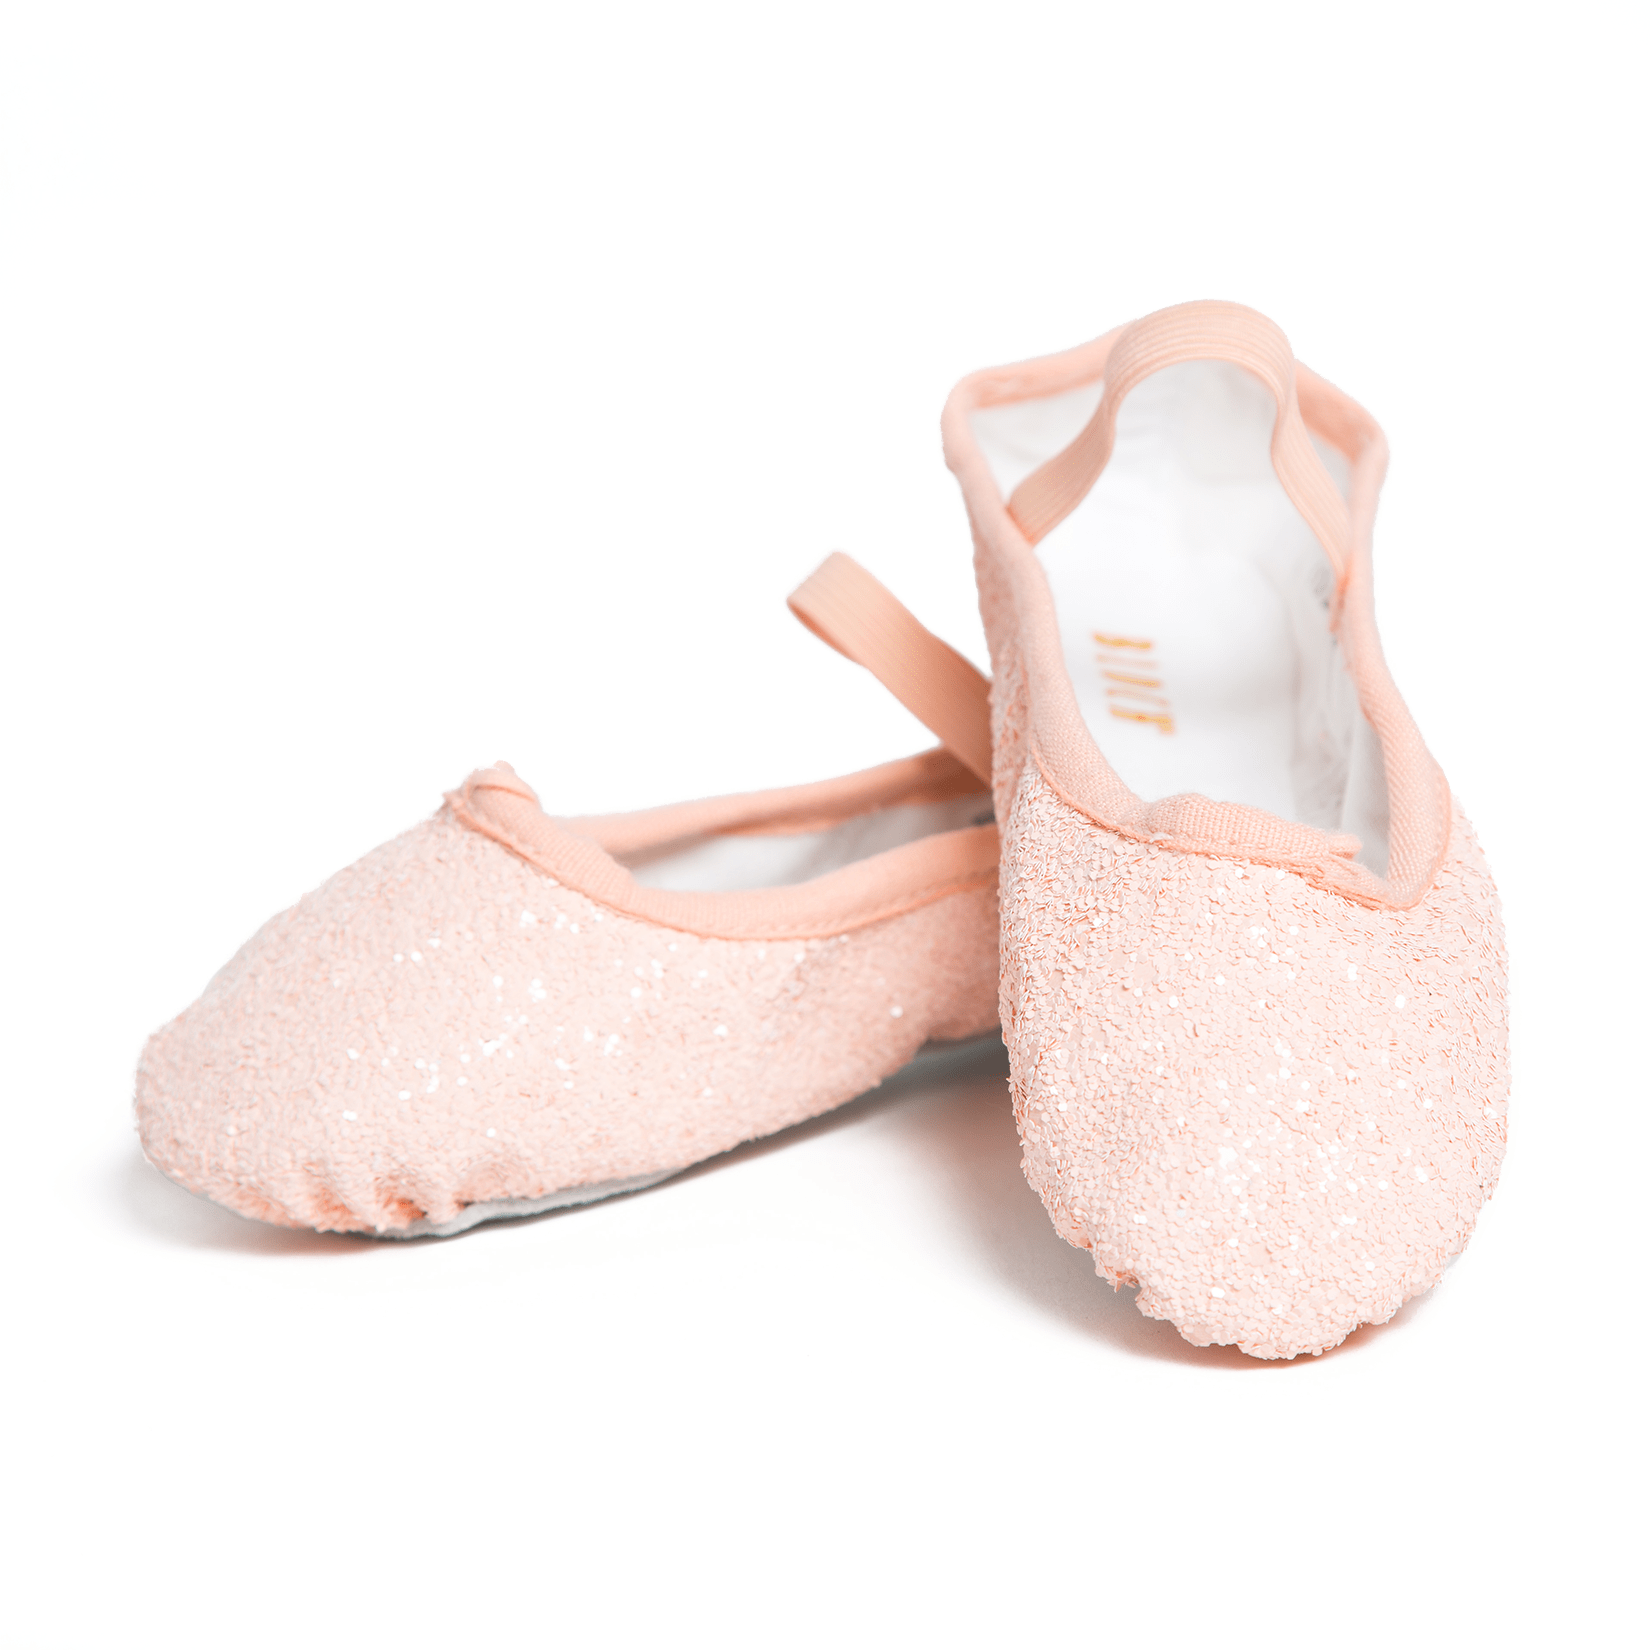 pink ballet shoes - 28 images - bloch 225 bunnyhop pink ...